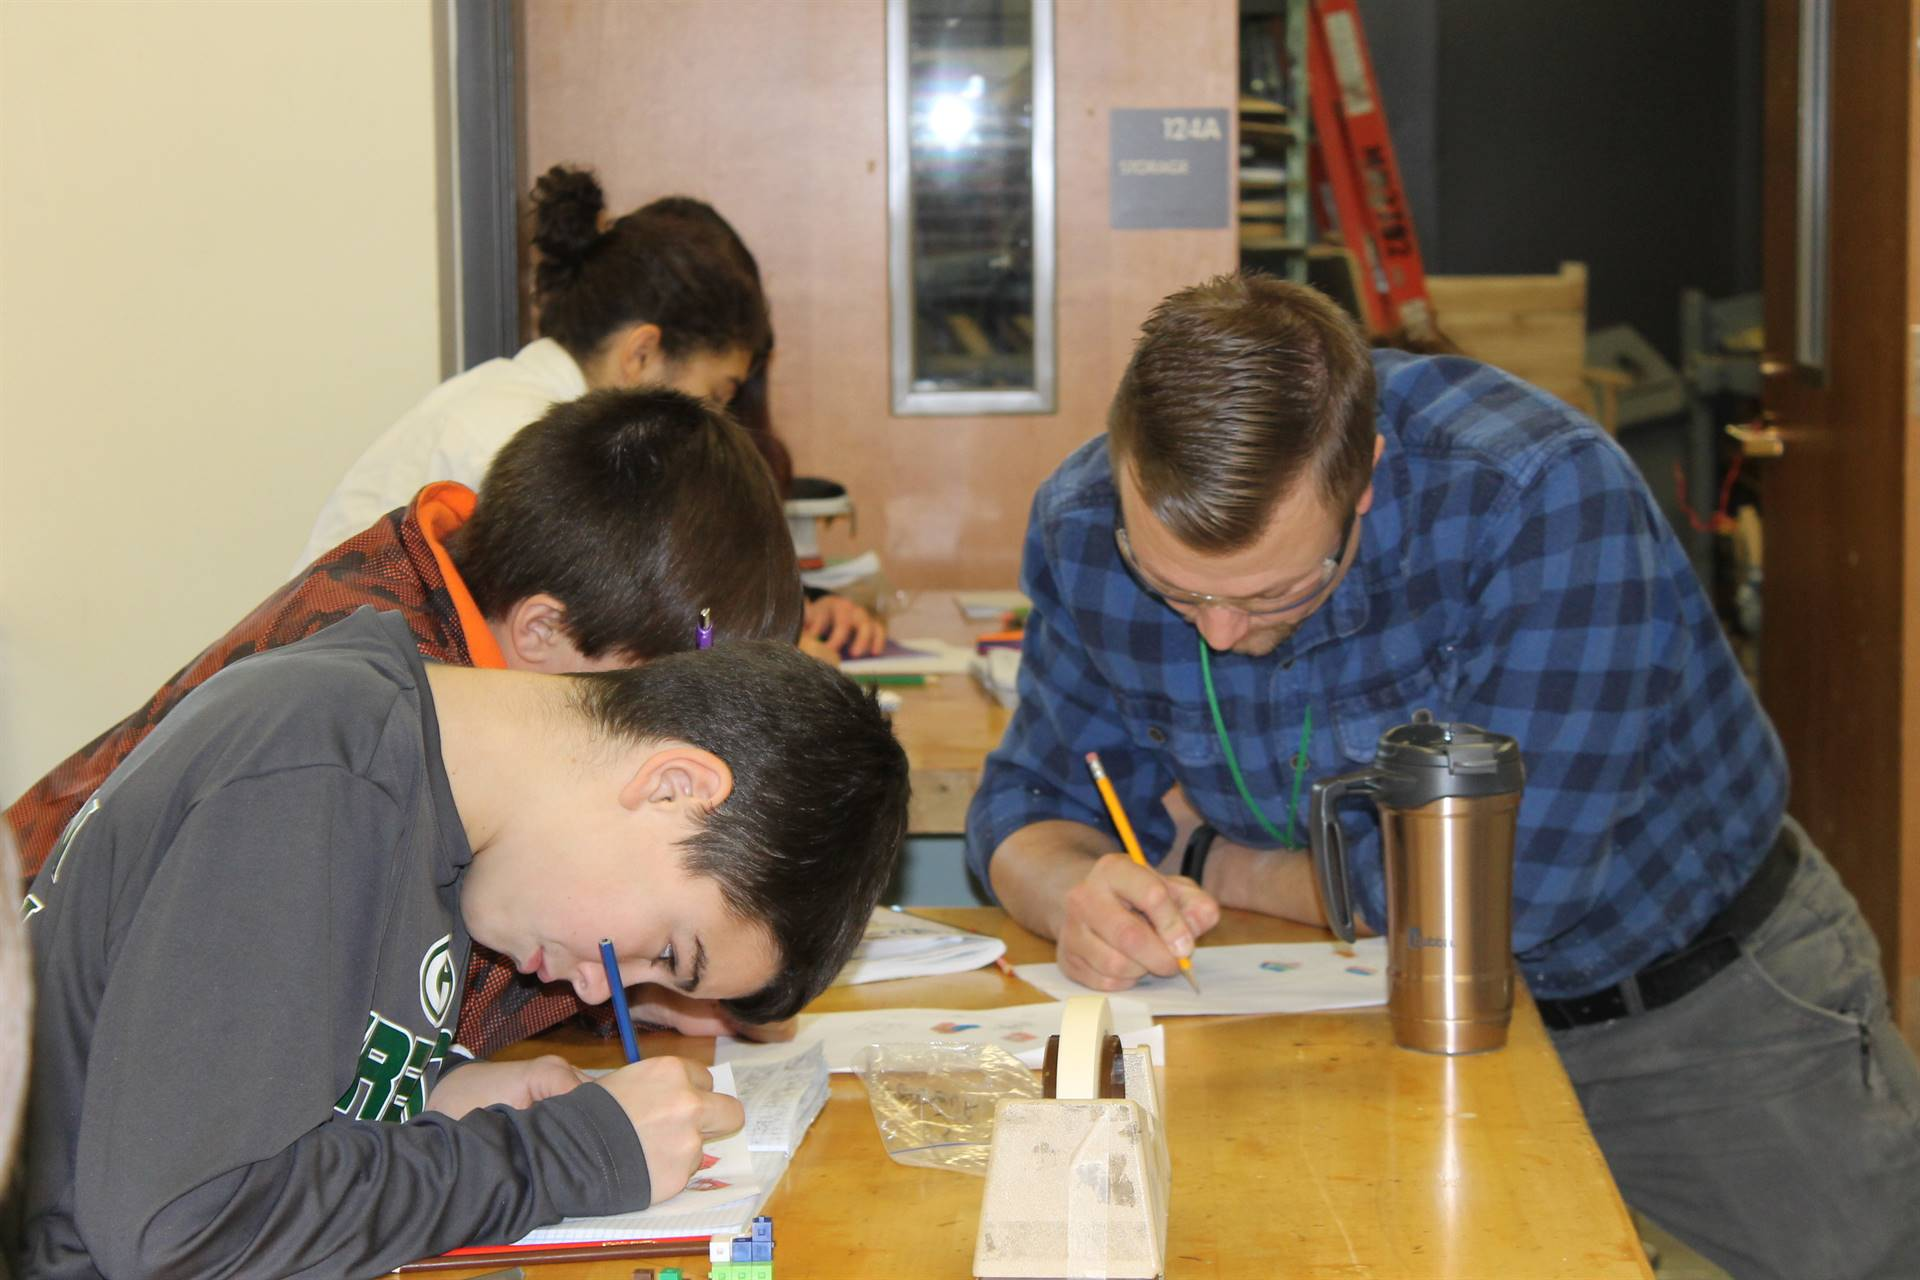 Students and teacher writing at table